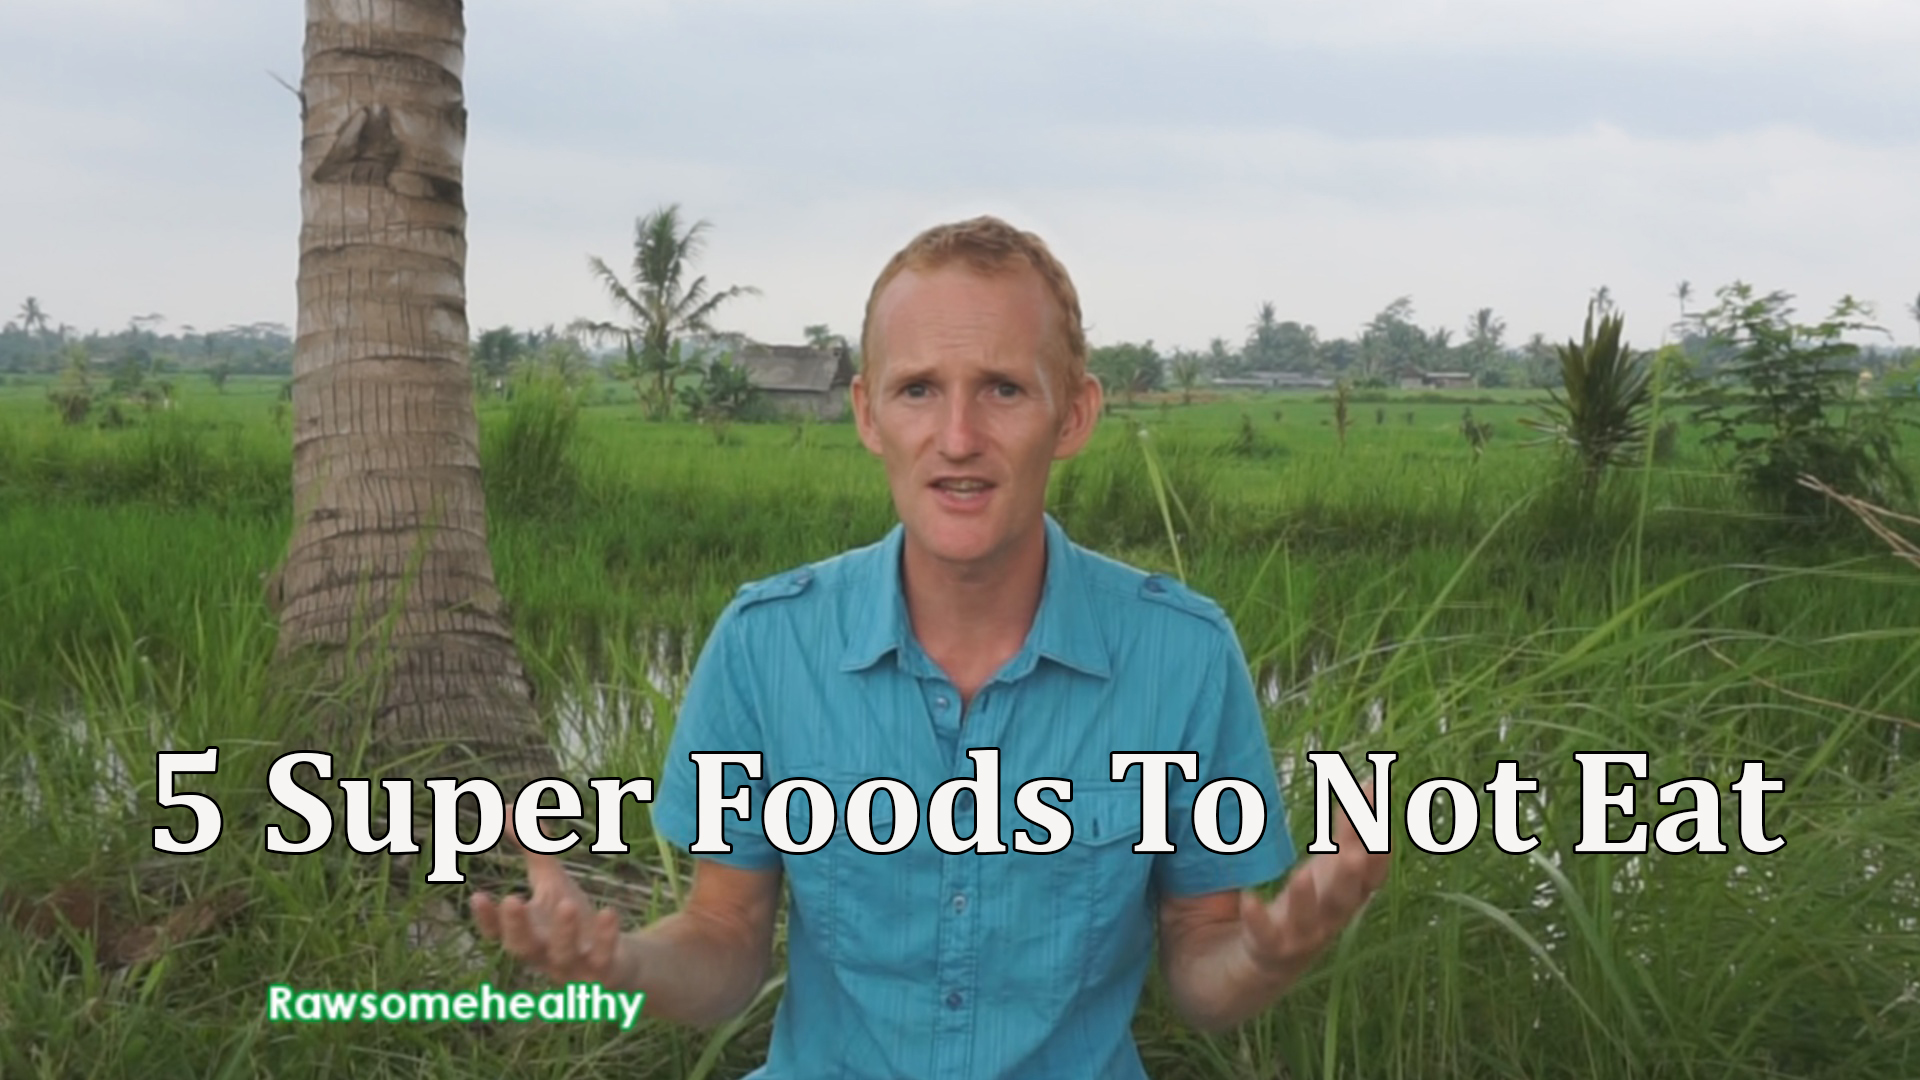 Top 5 Superfoods That Are A Waste Of Your Money